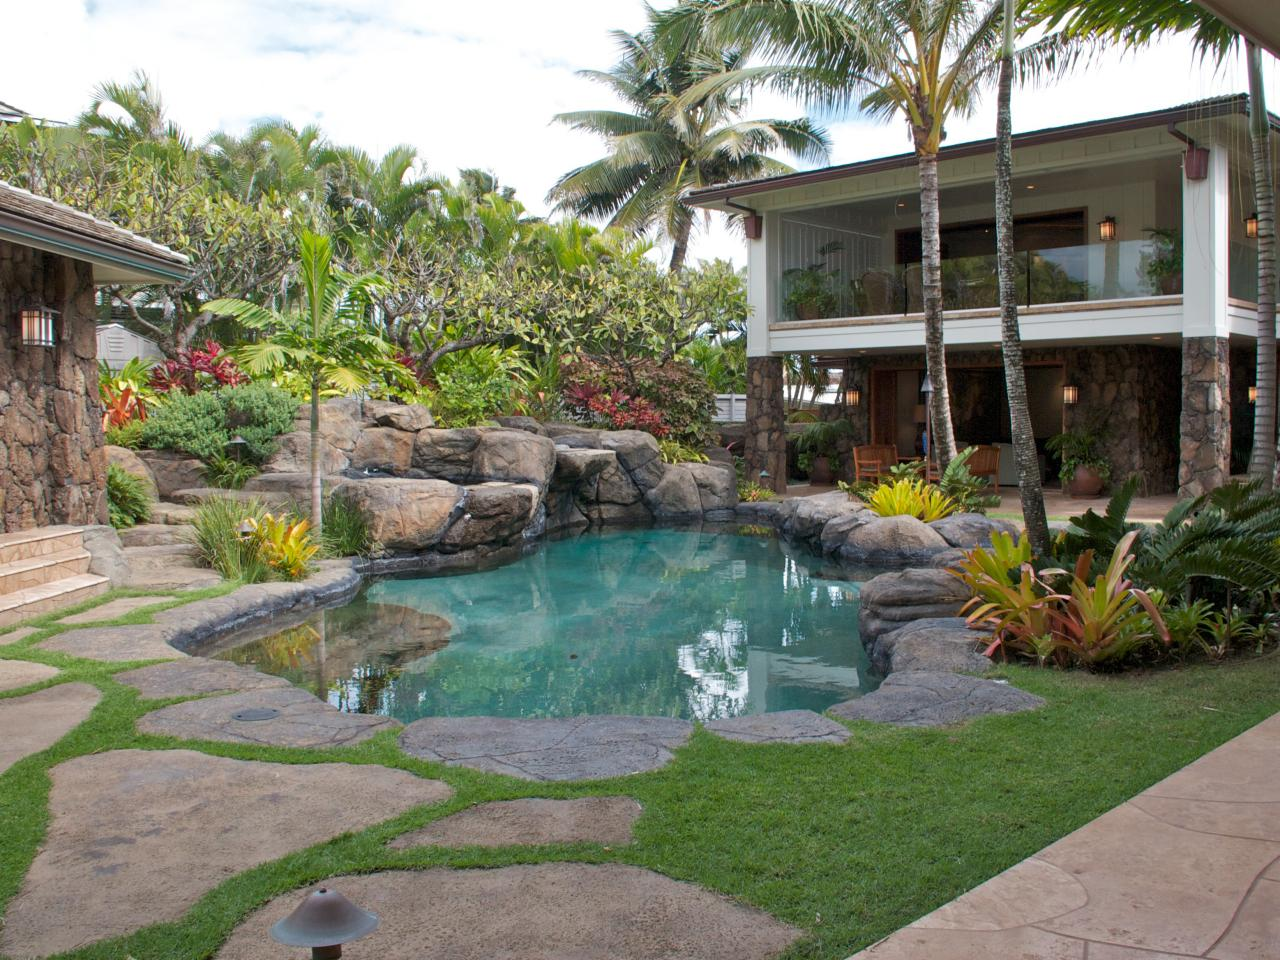 How To Transform Your Backyard Into A Tropical Island